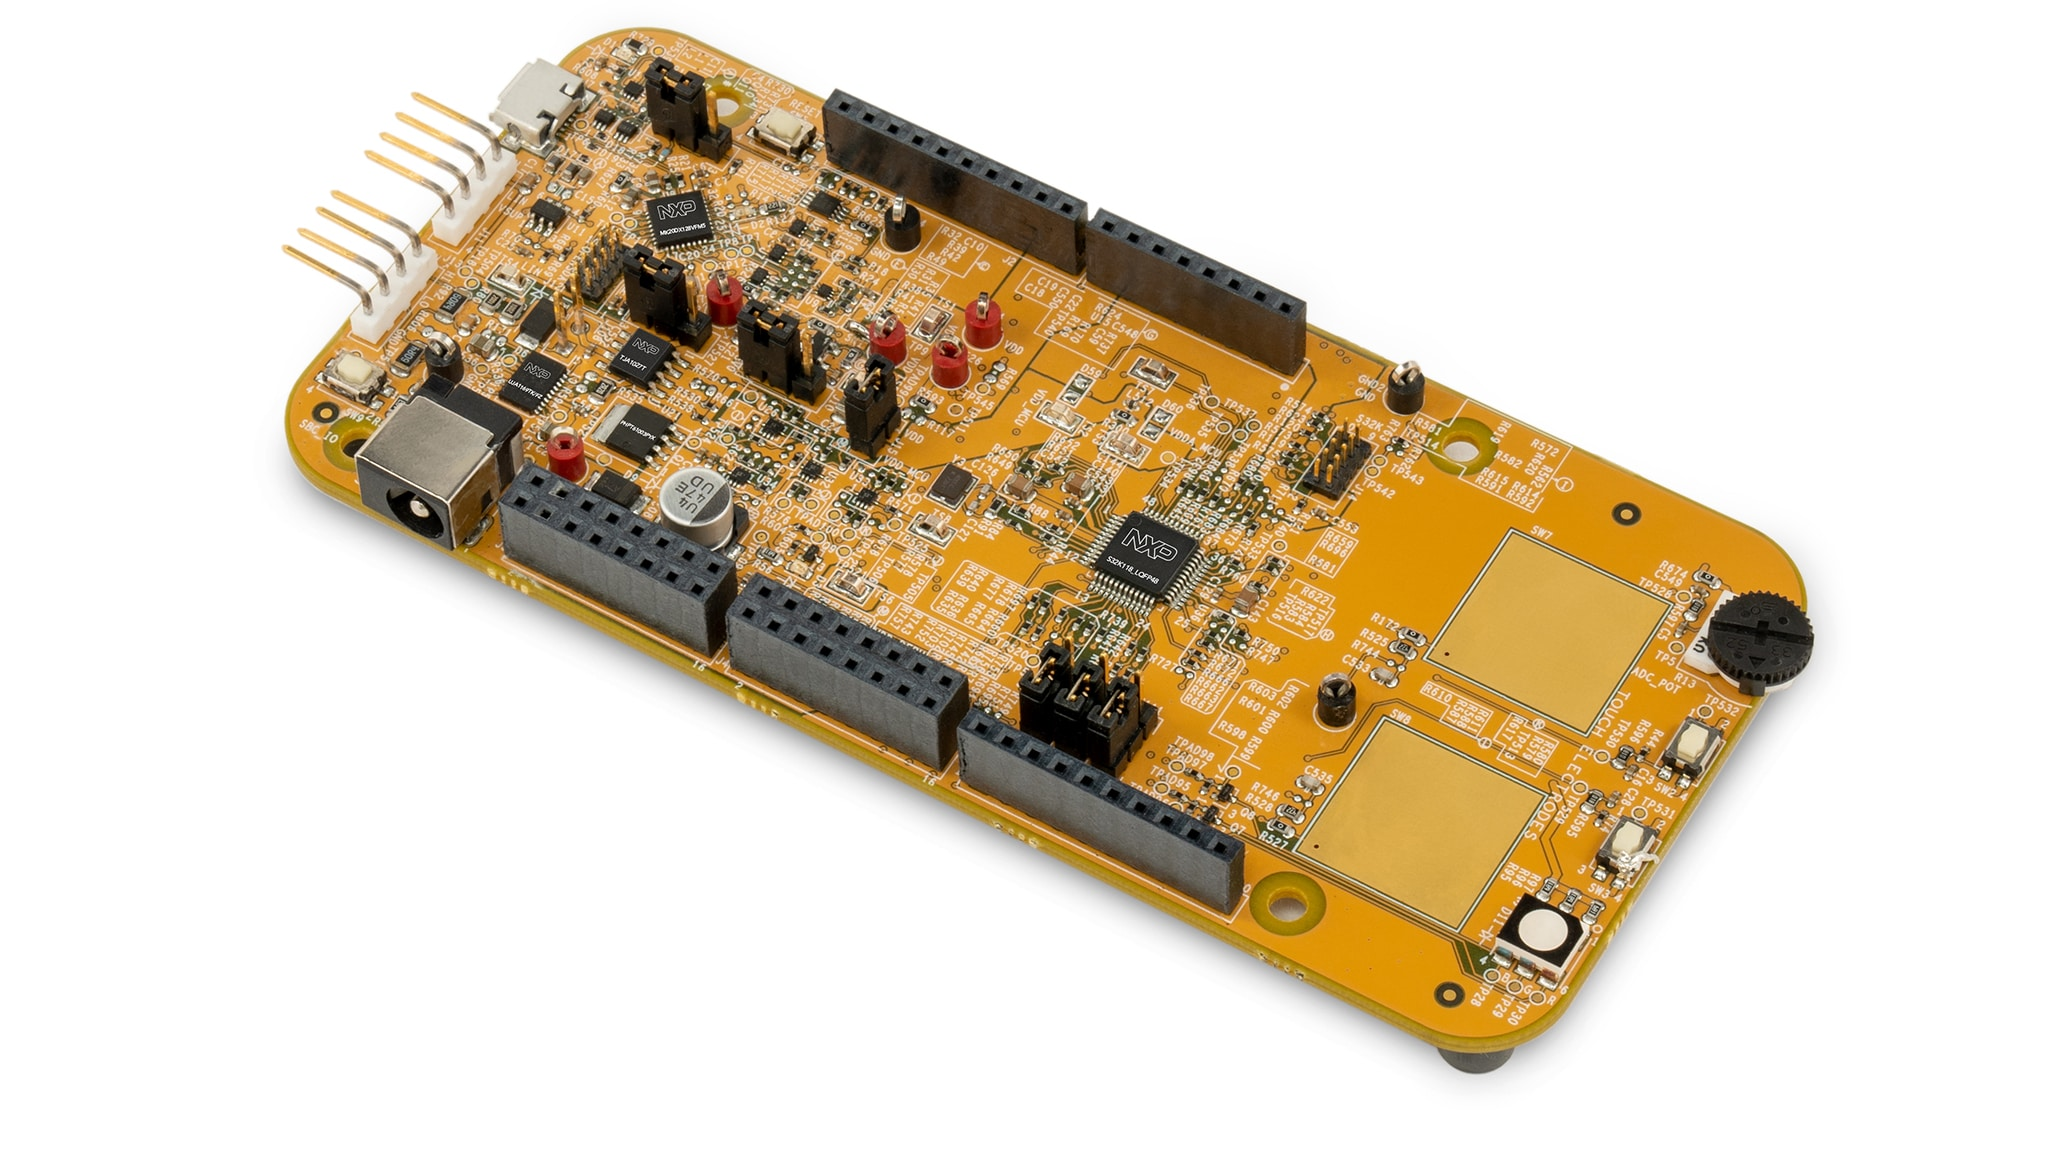 S32K118 Evaluation Board for General Purpose